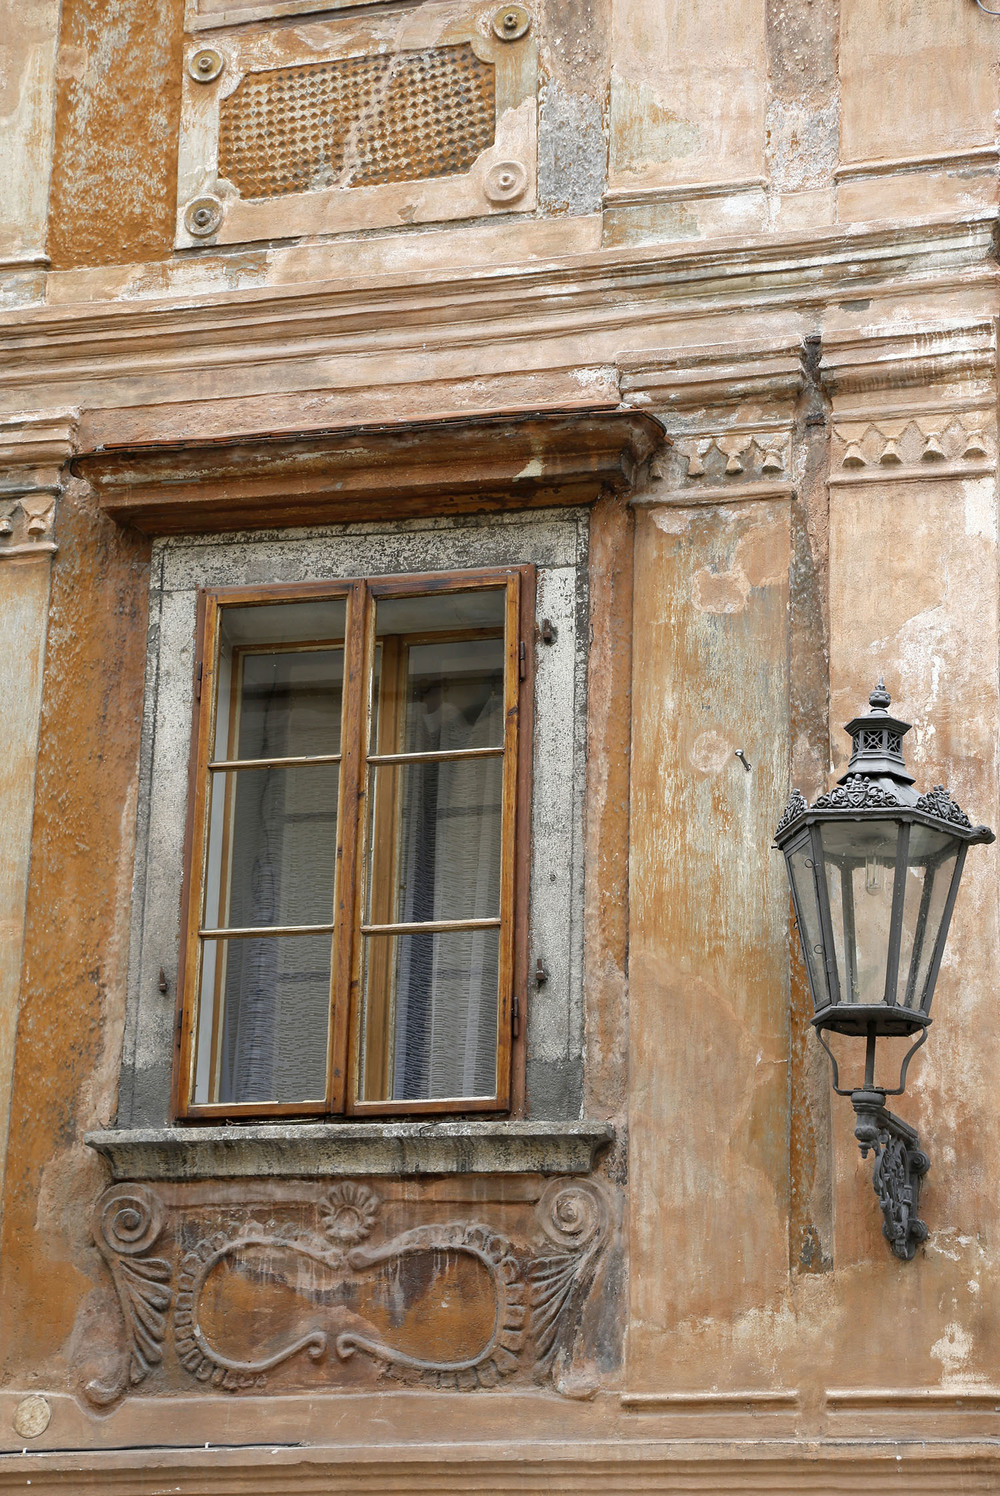 The Cesky Window